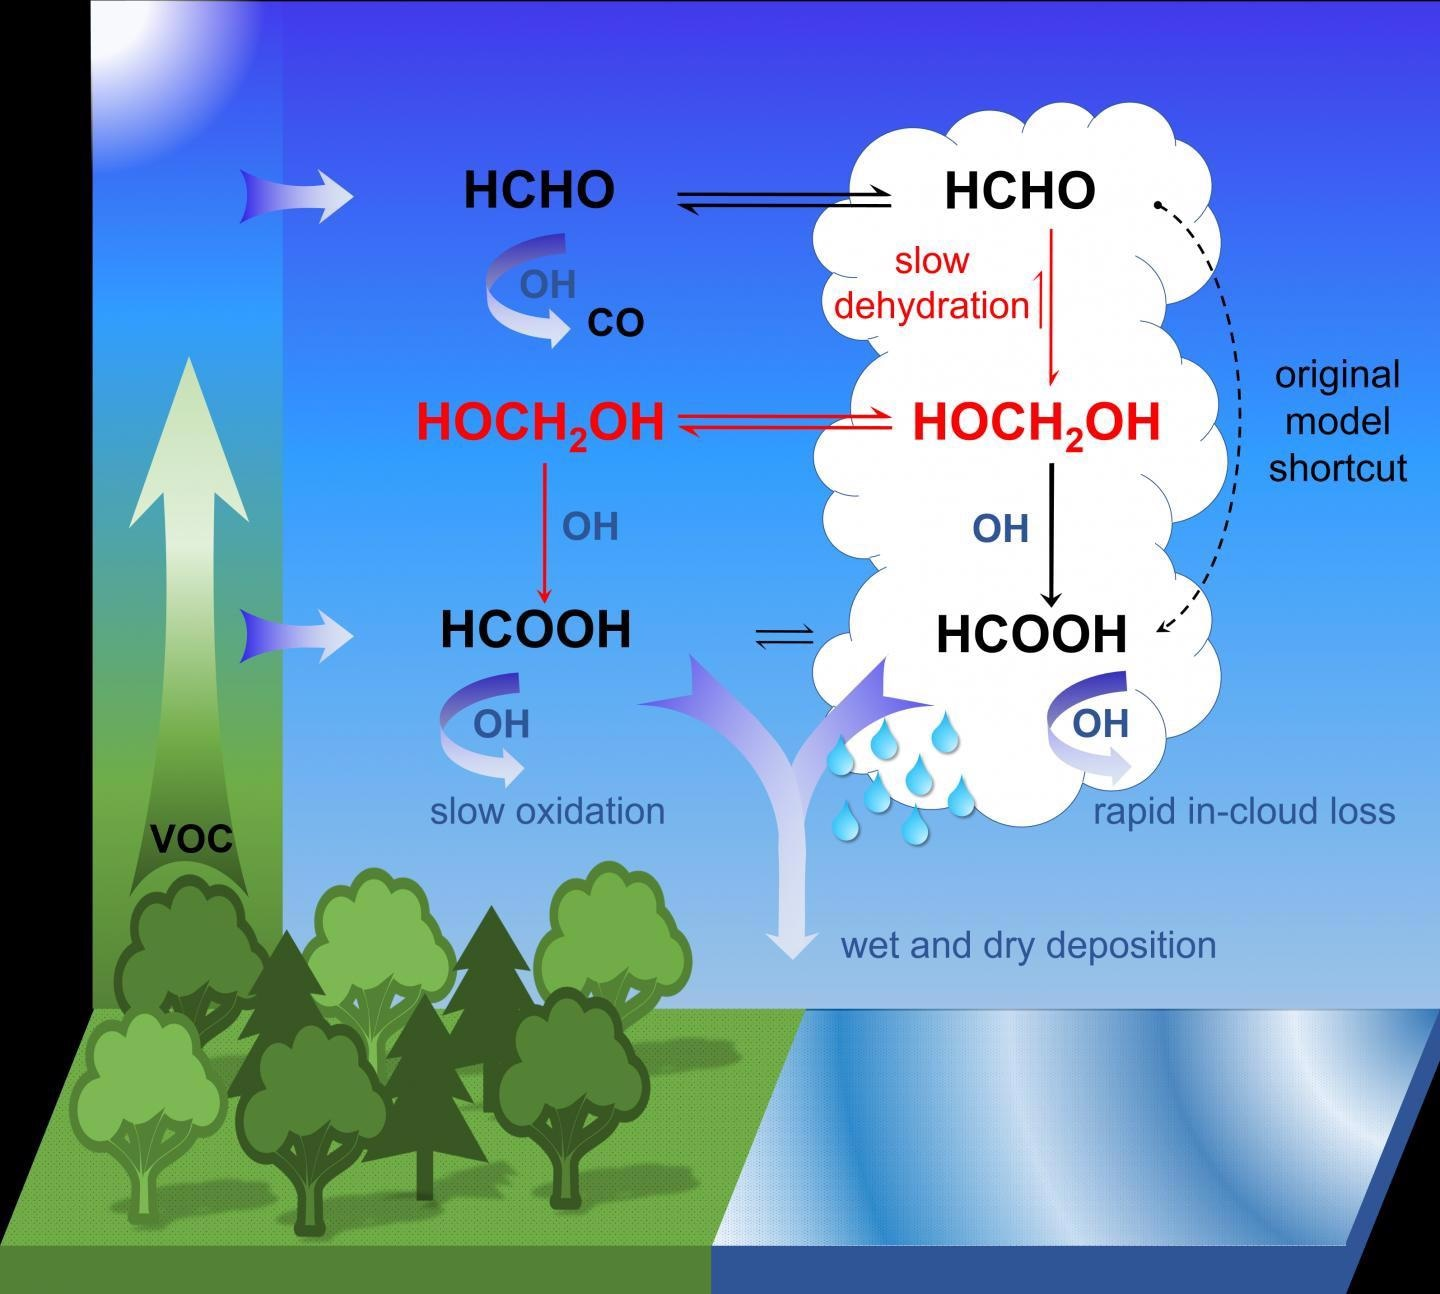 New Insight on Acid Formation can Help Refine Atmosphere and Climate Models